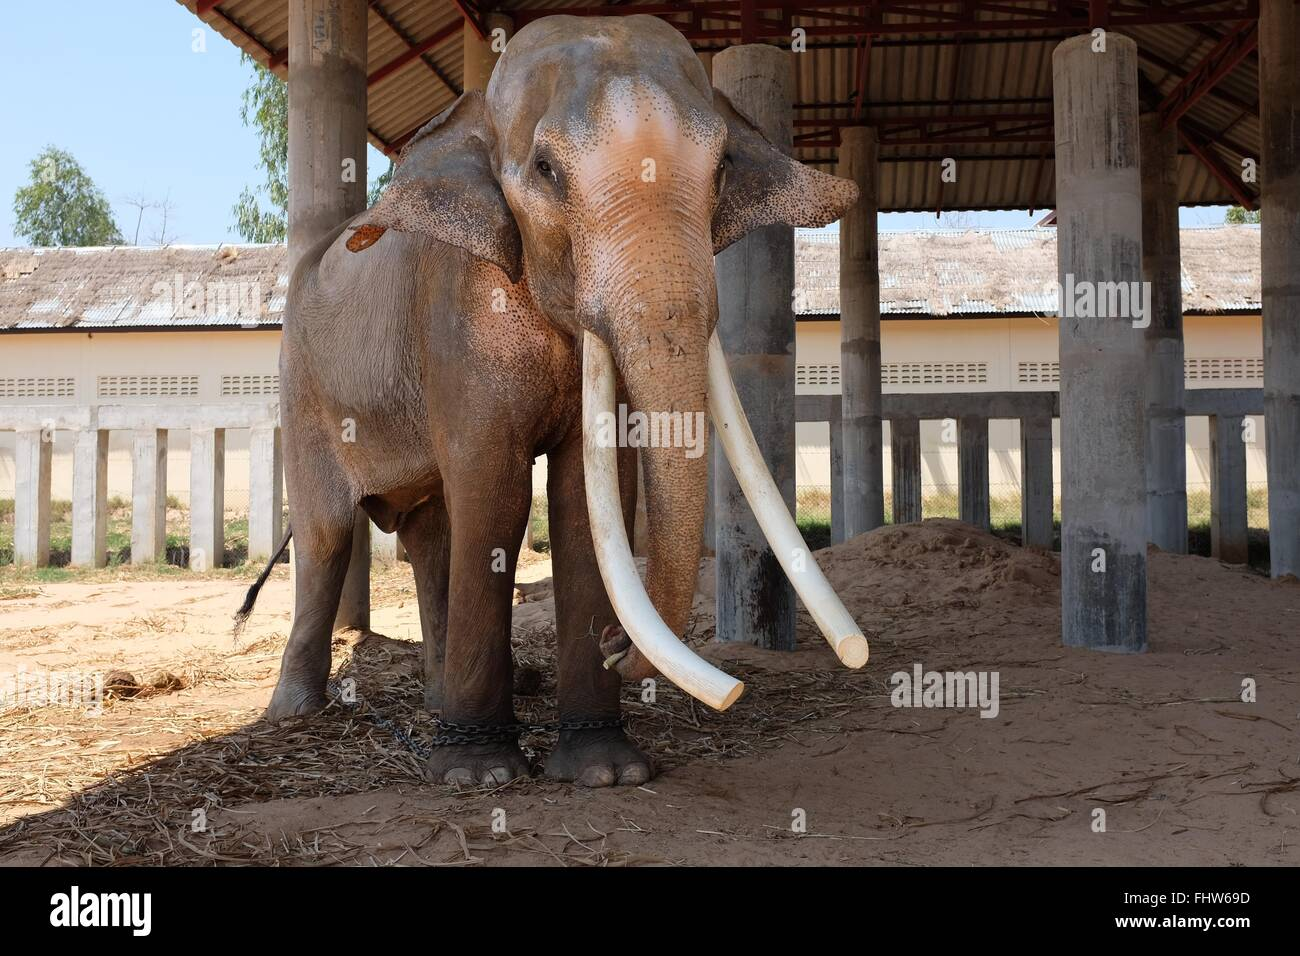 What is a male elephant called?